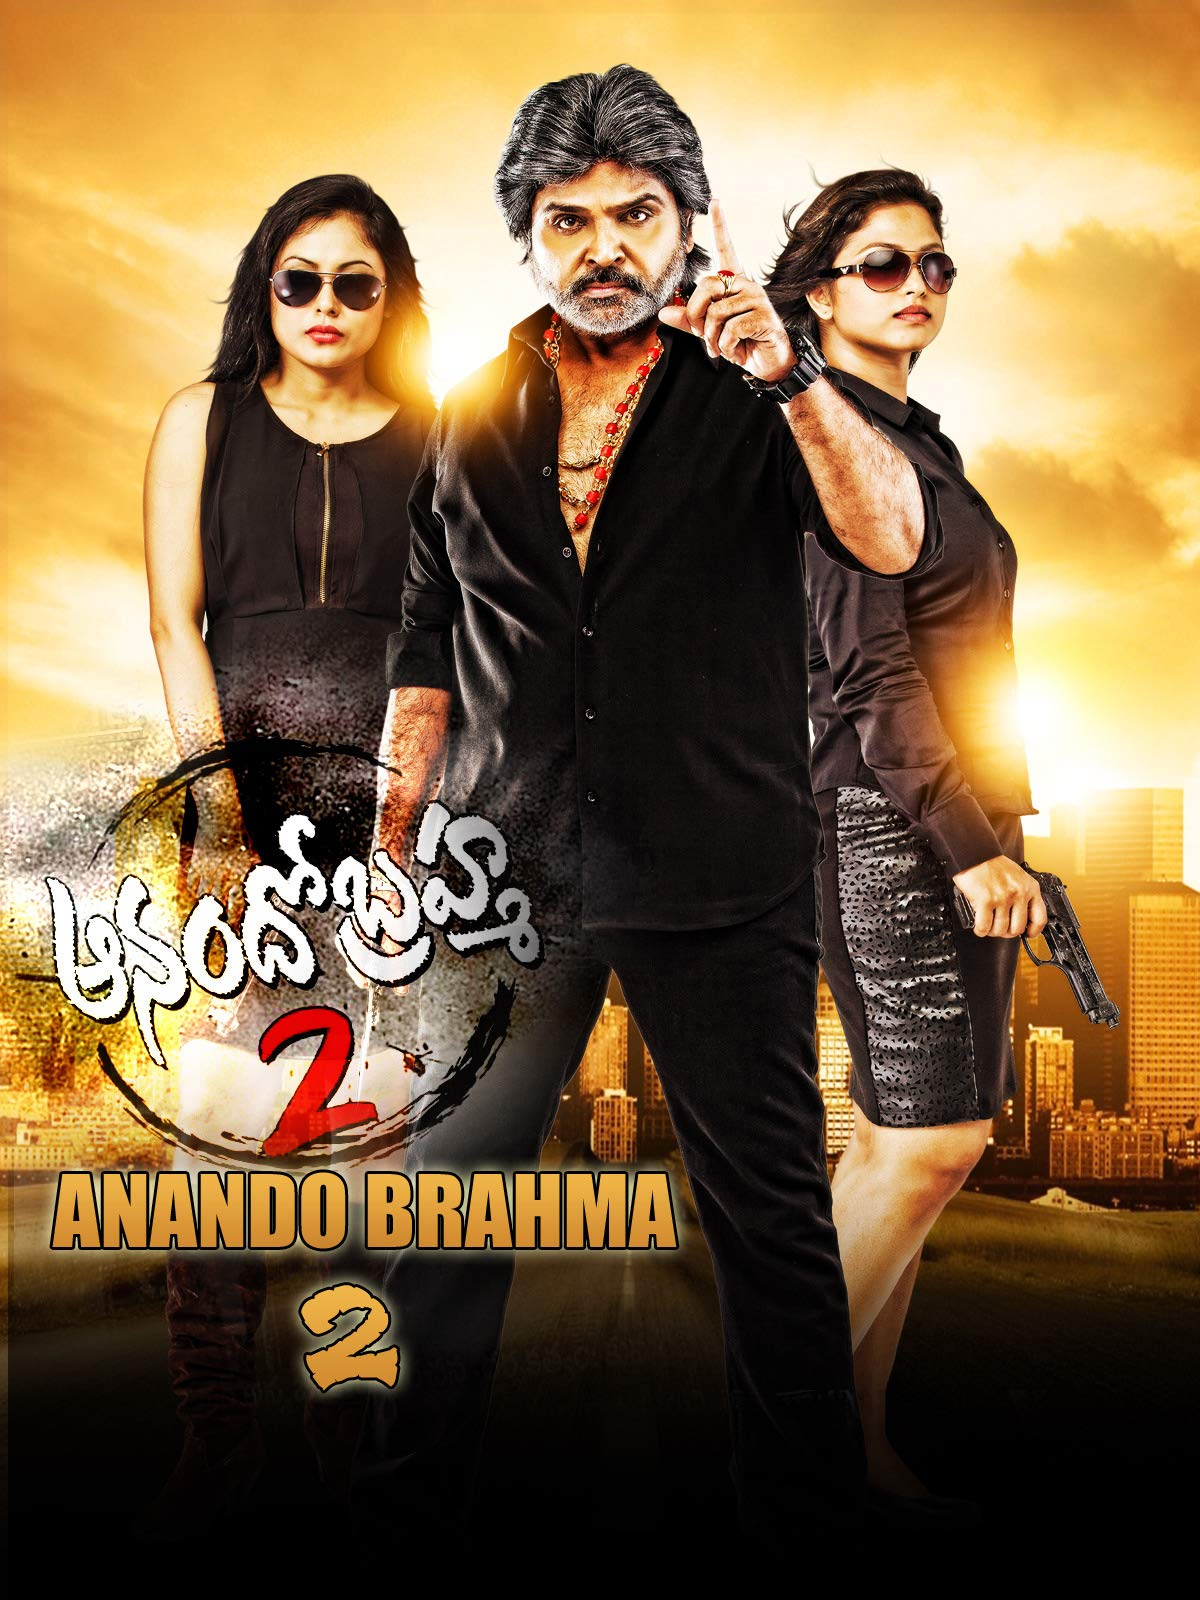 Anando Brahma 2 on Amazon Prime Video UK